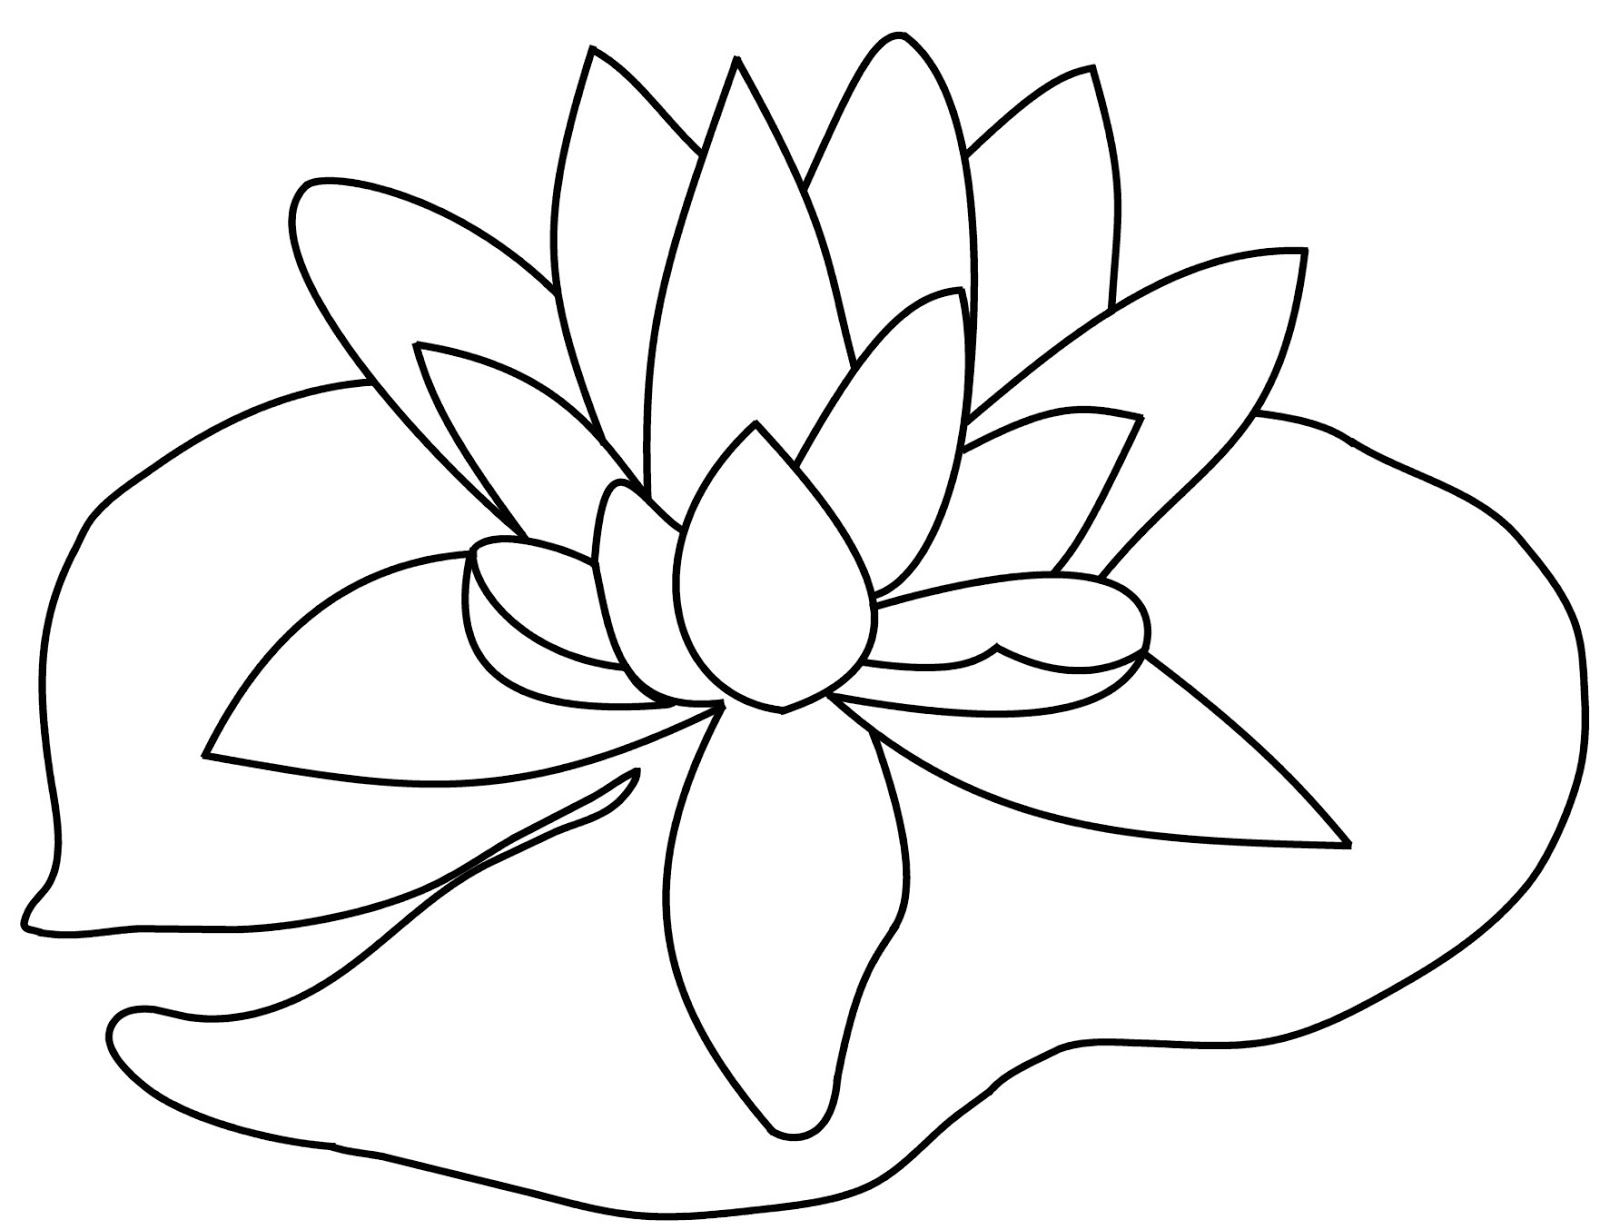 Free Lily Pad Template Download Free Clip Art Free Clip Art On Clipart Library Lily Pad Drawing Lily Pads Lilies Drawing